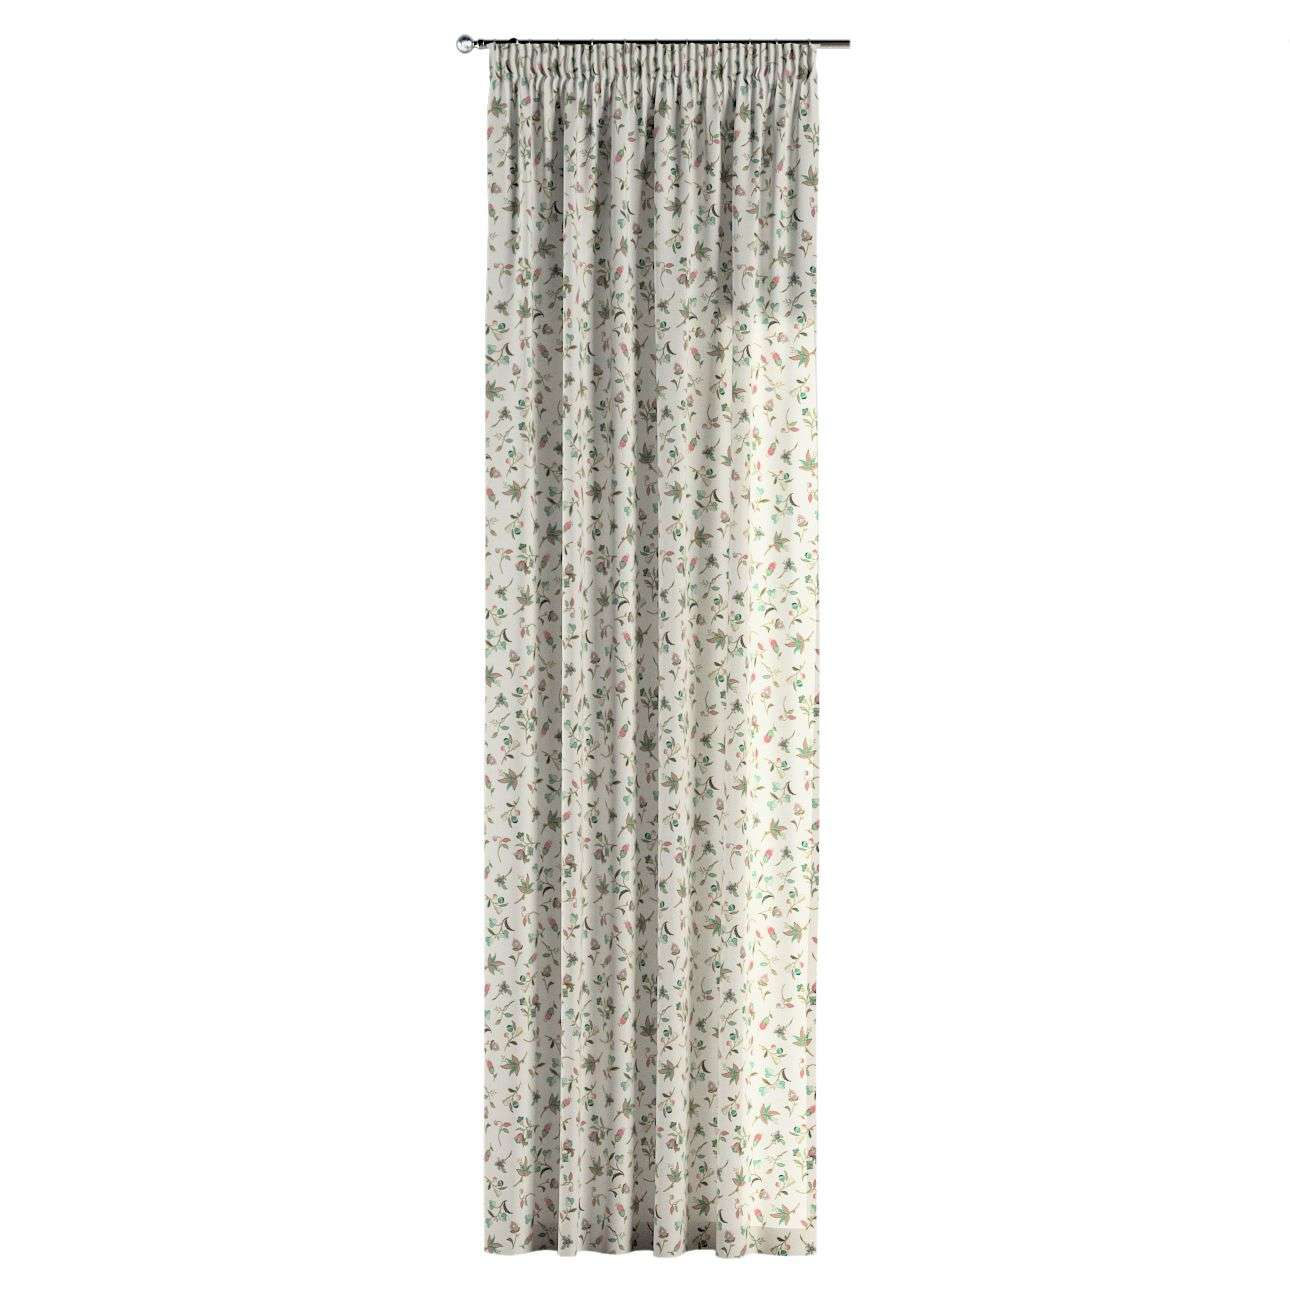 Pencil pleat curtains in collection Londres, fabric: 122-02